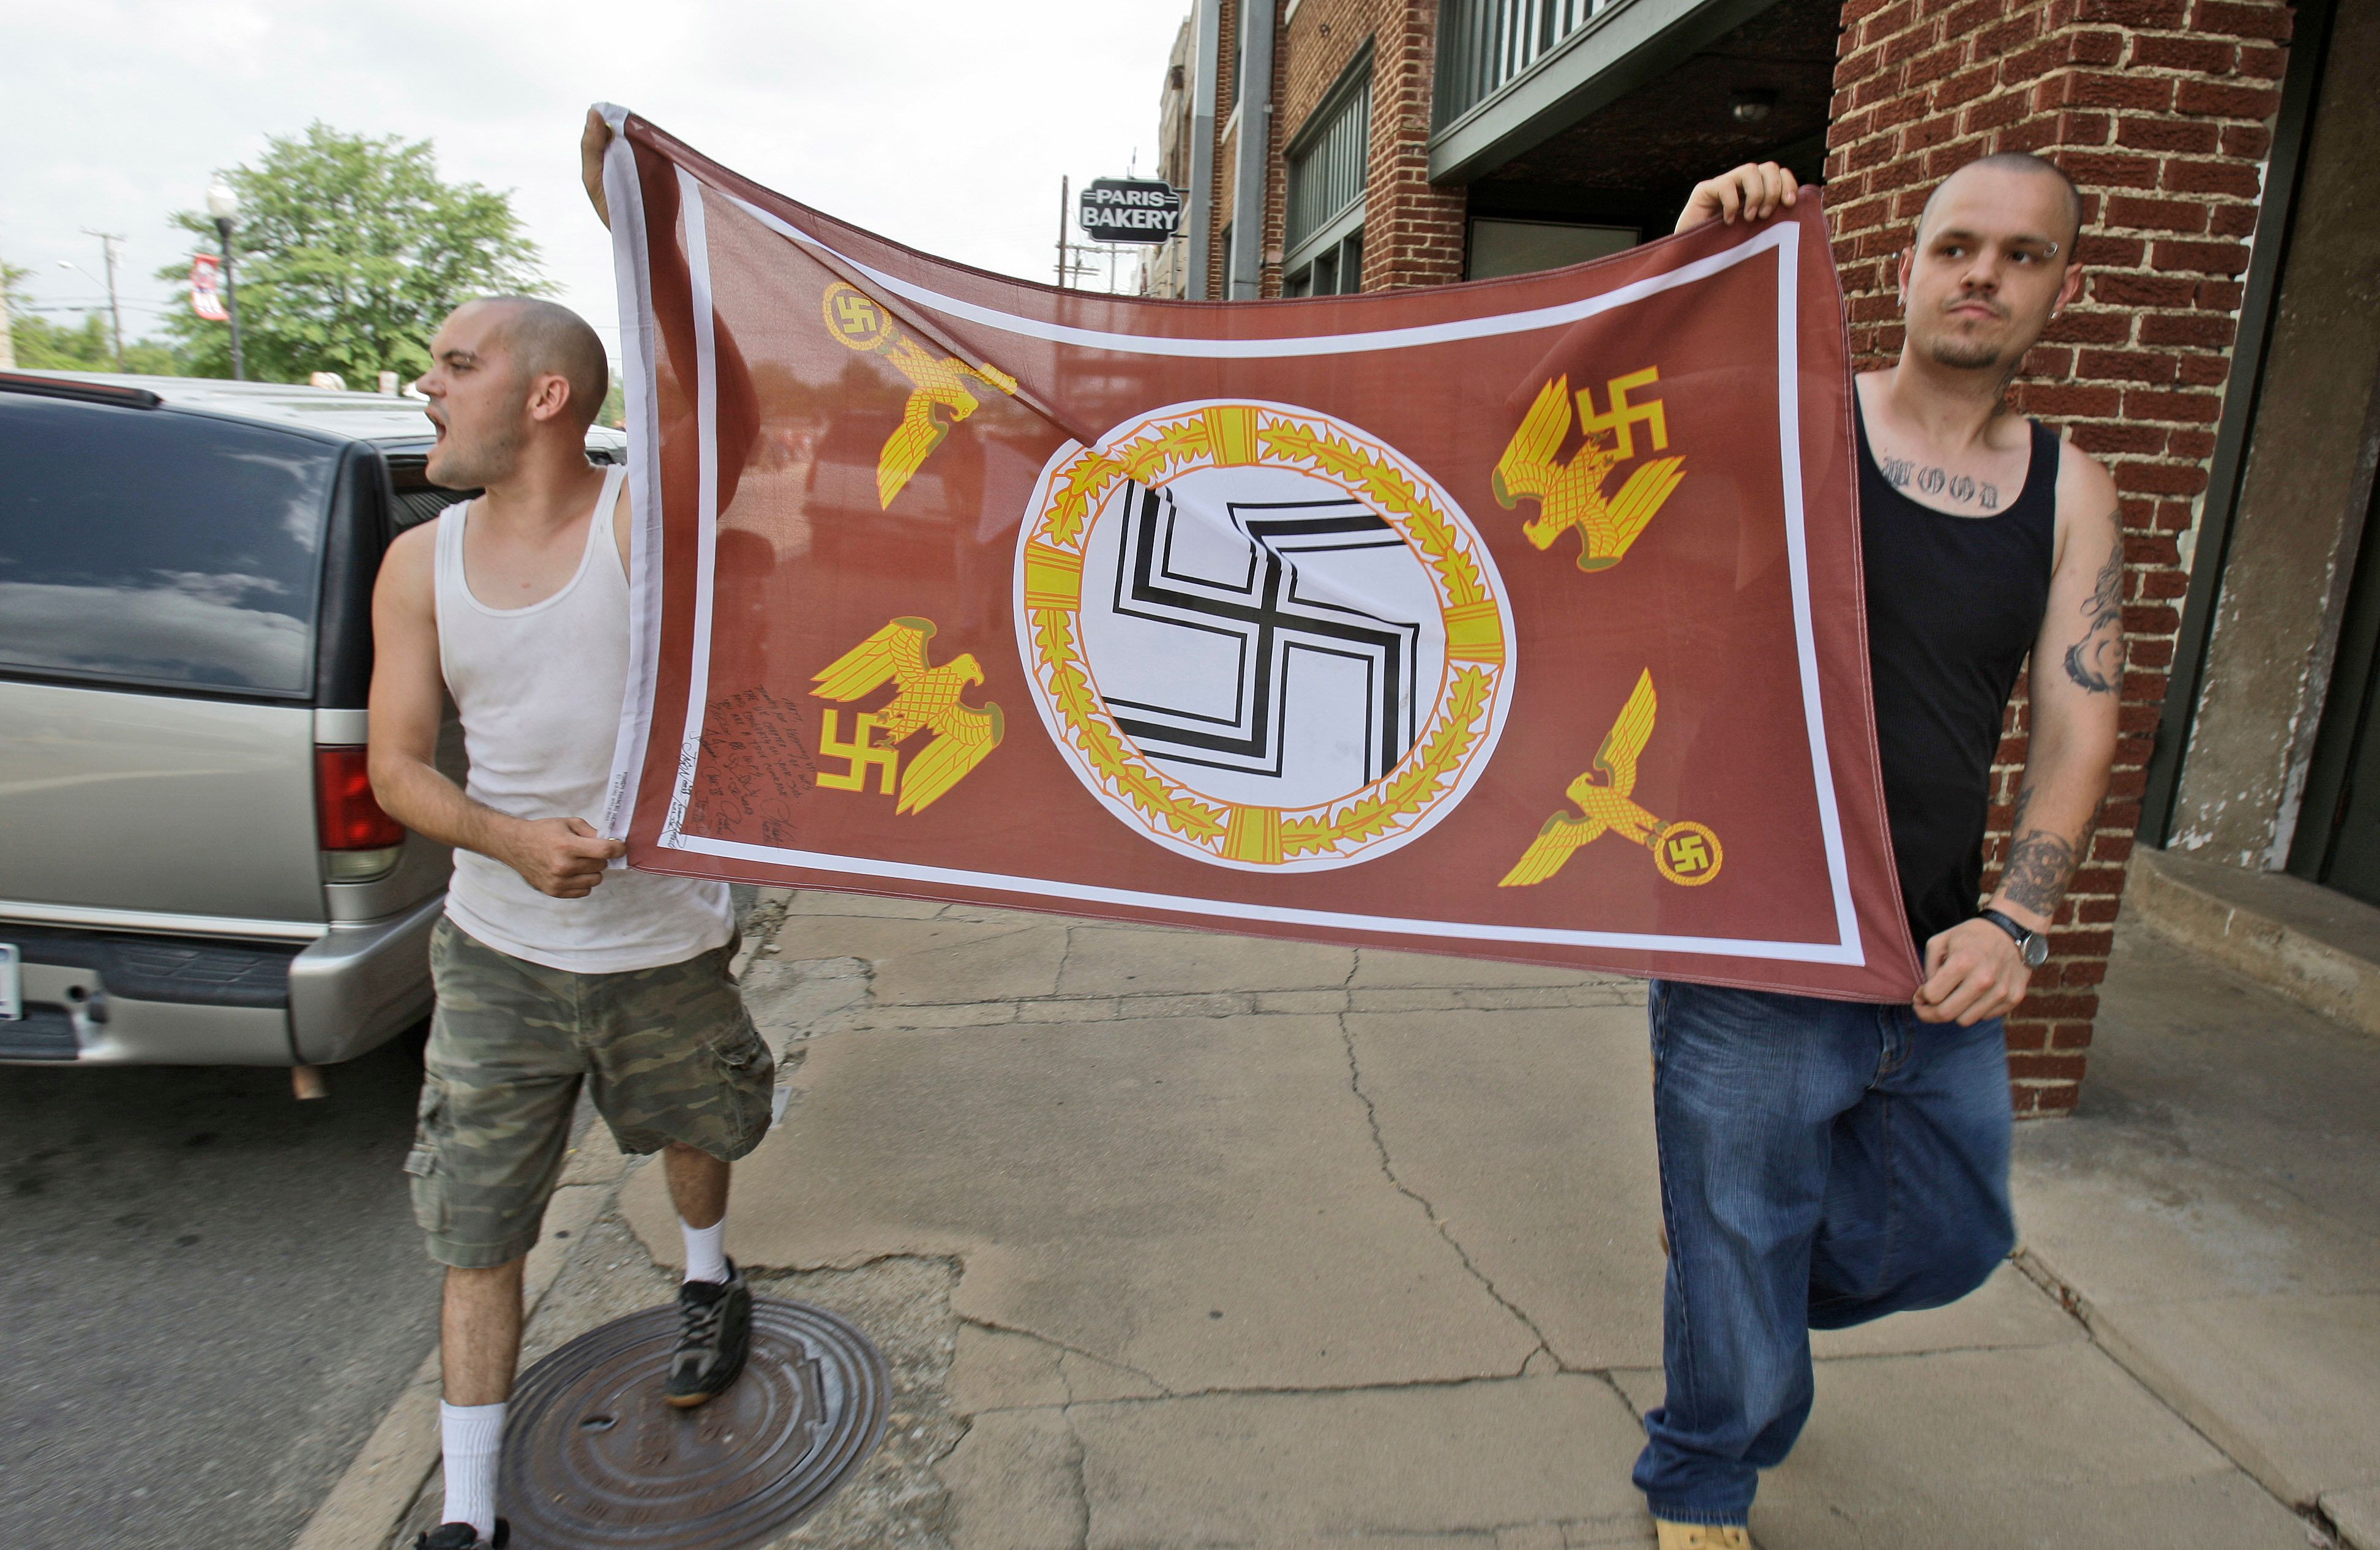 New Data Show The State Of Hate In